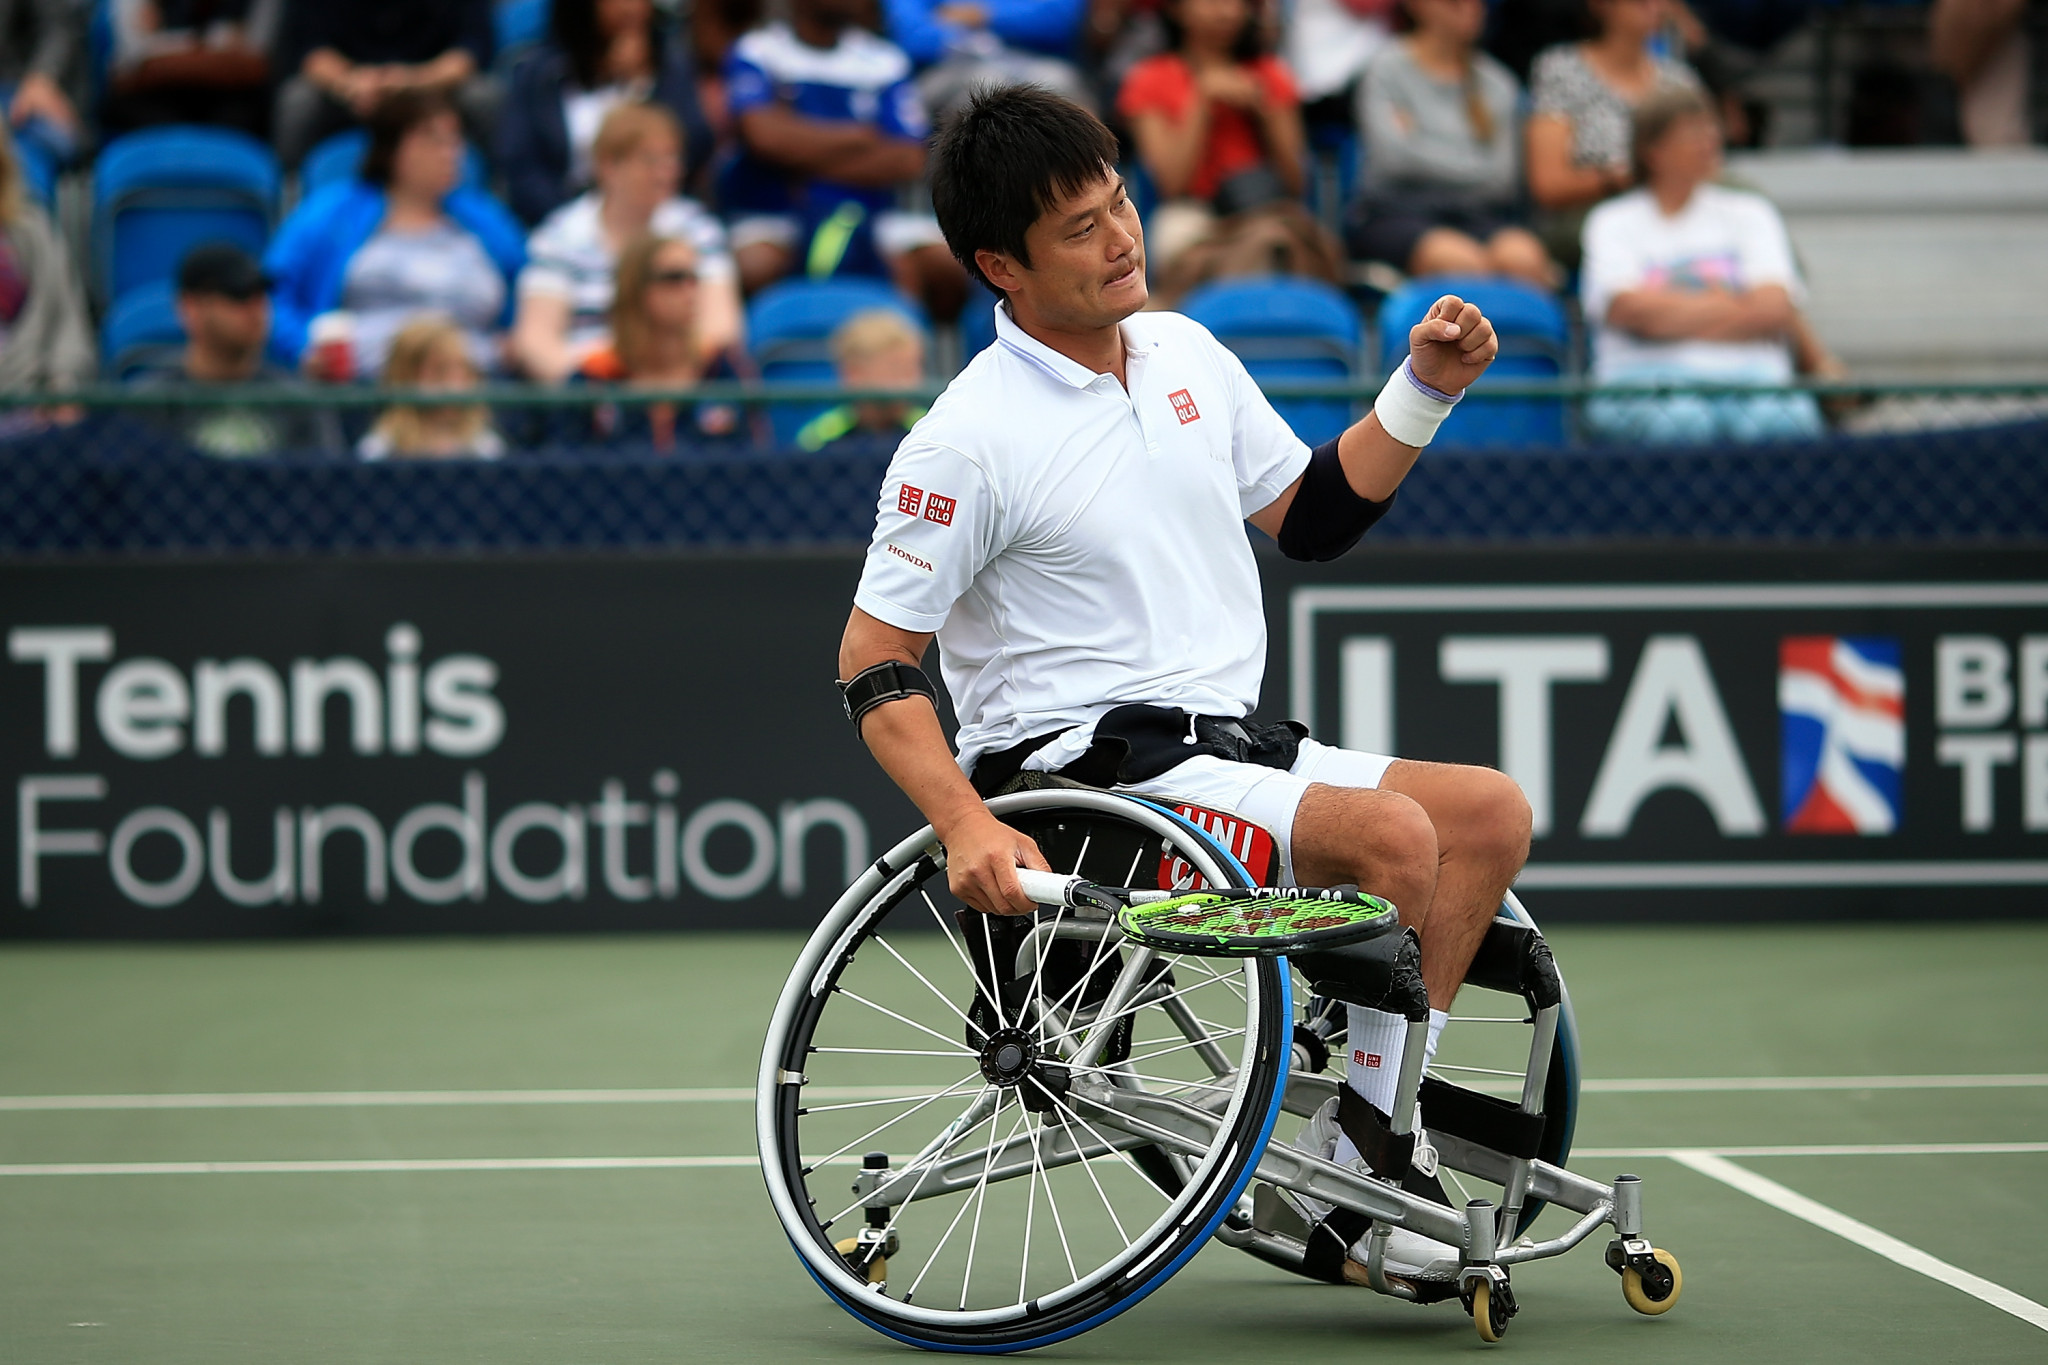 Shingo Kunieda defeated Britain's Gordon Reid to win the ITF Japan Open quarter-final ©Getty Images